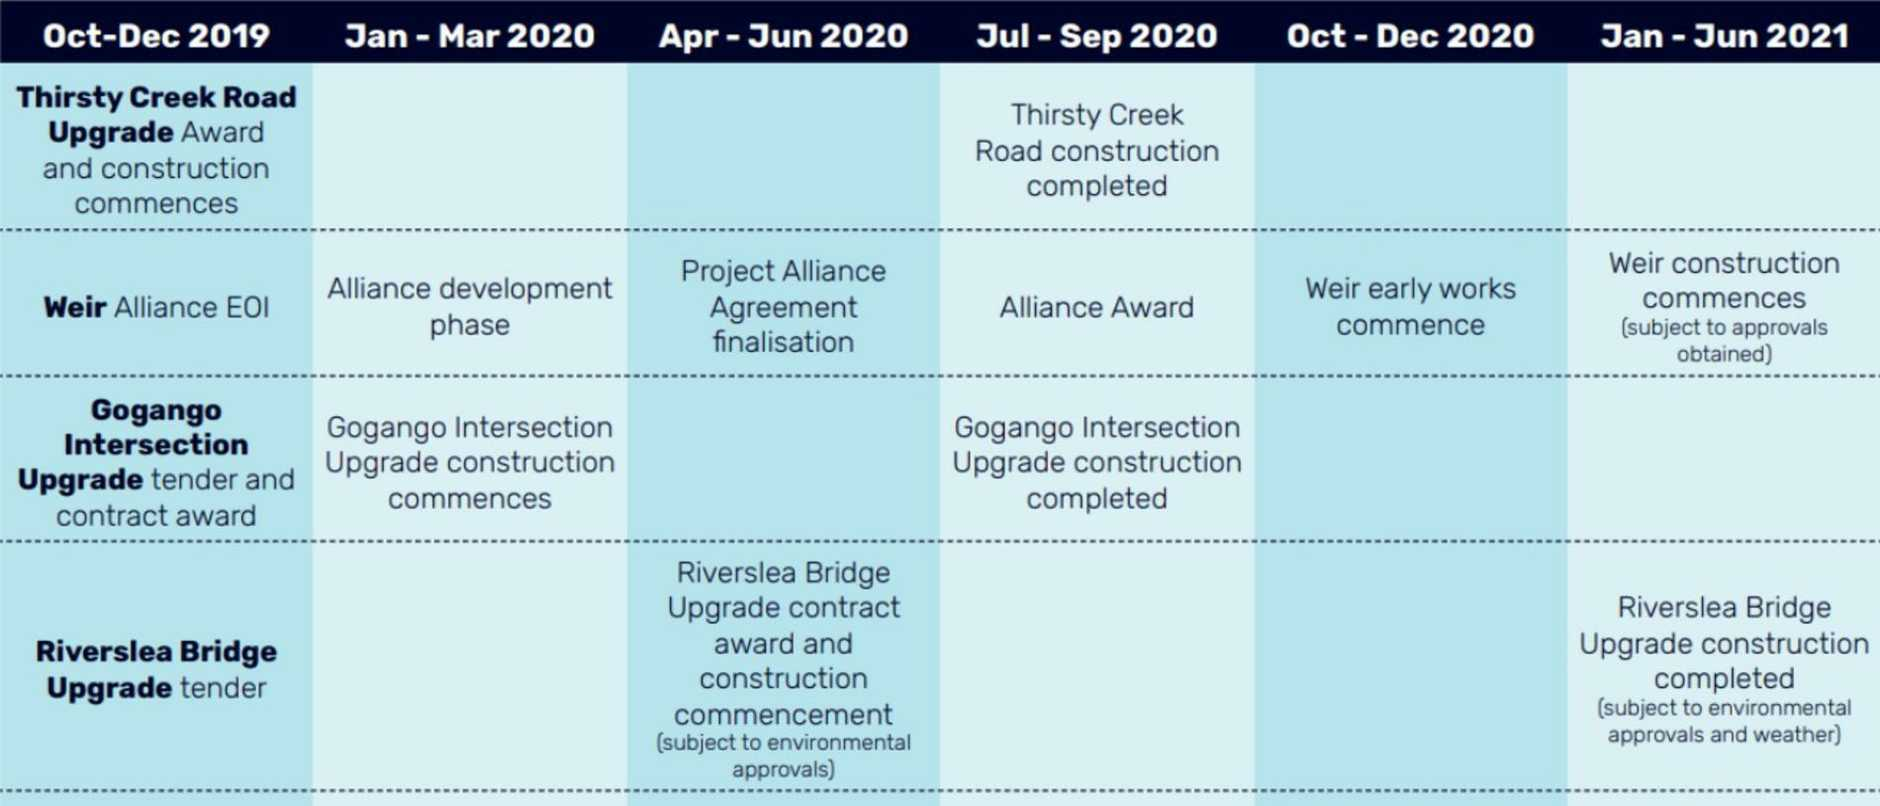 Rookwood Weir's project timeline.